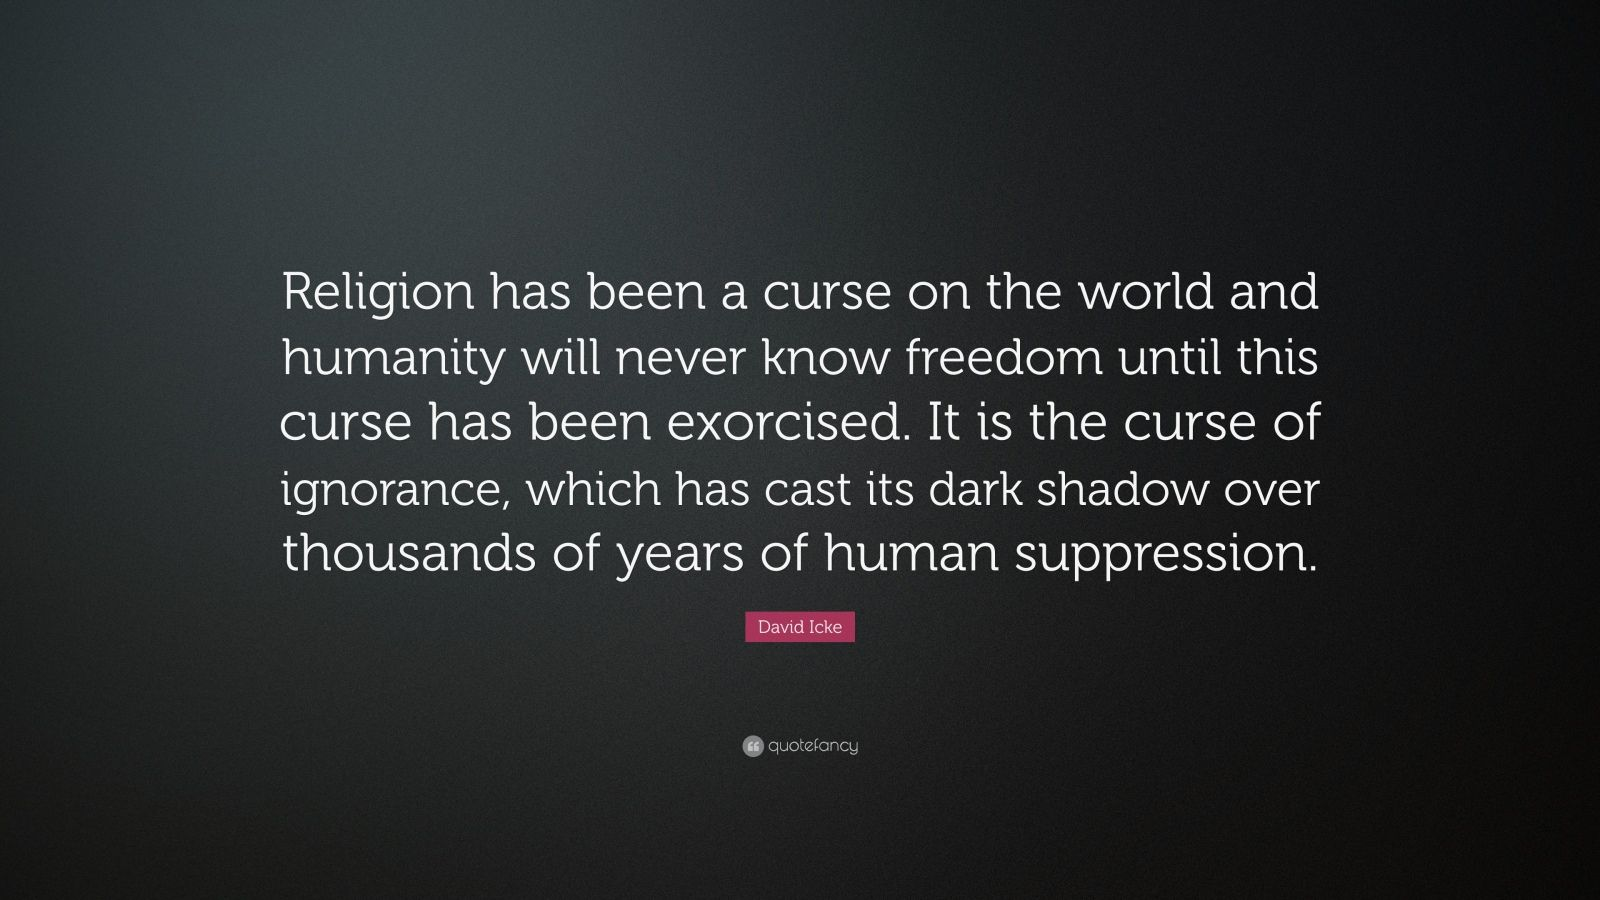 """David Icke Quote: """"Religion has been a curse on the world and humanity will never know freedom until this curse has been exorcised. It is the curse of ignorance, which has cast its dark shadow over thousands of years of human suppression."""""""